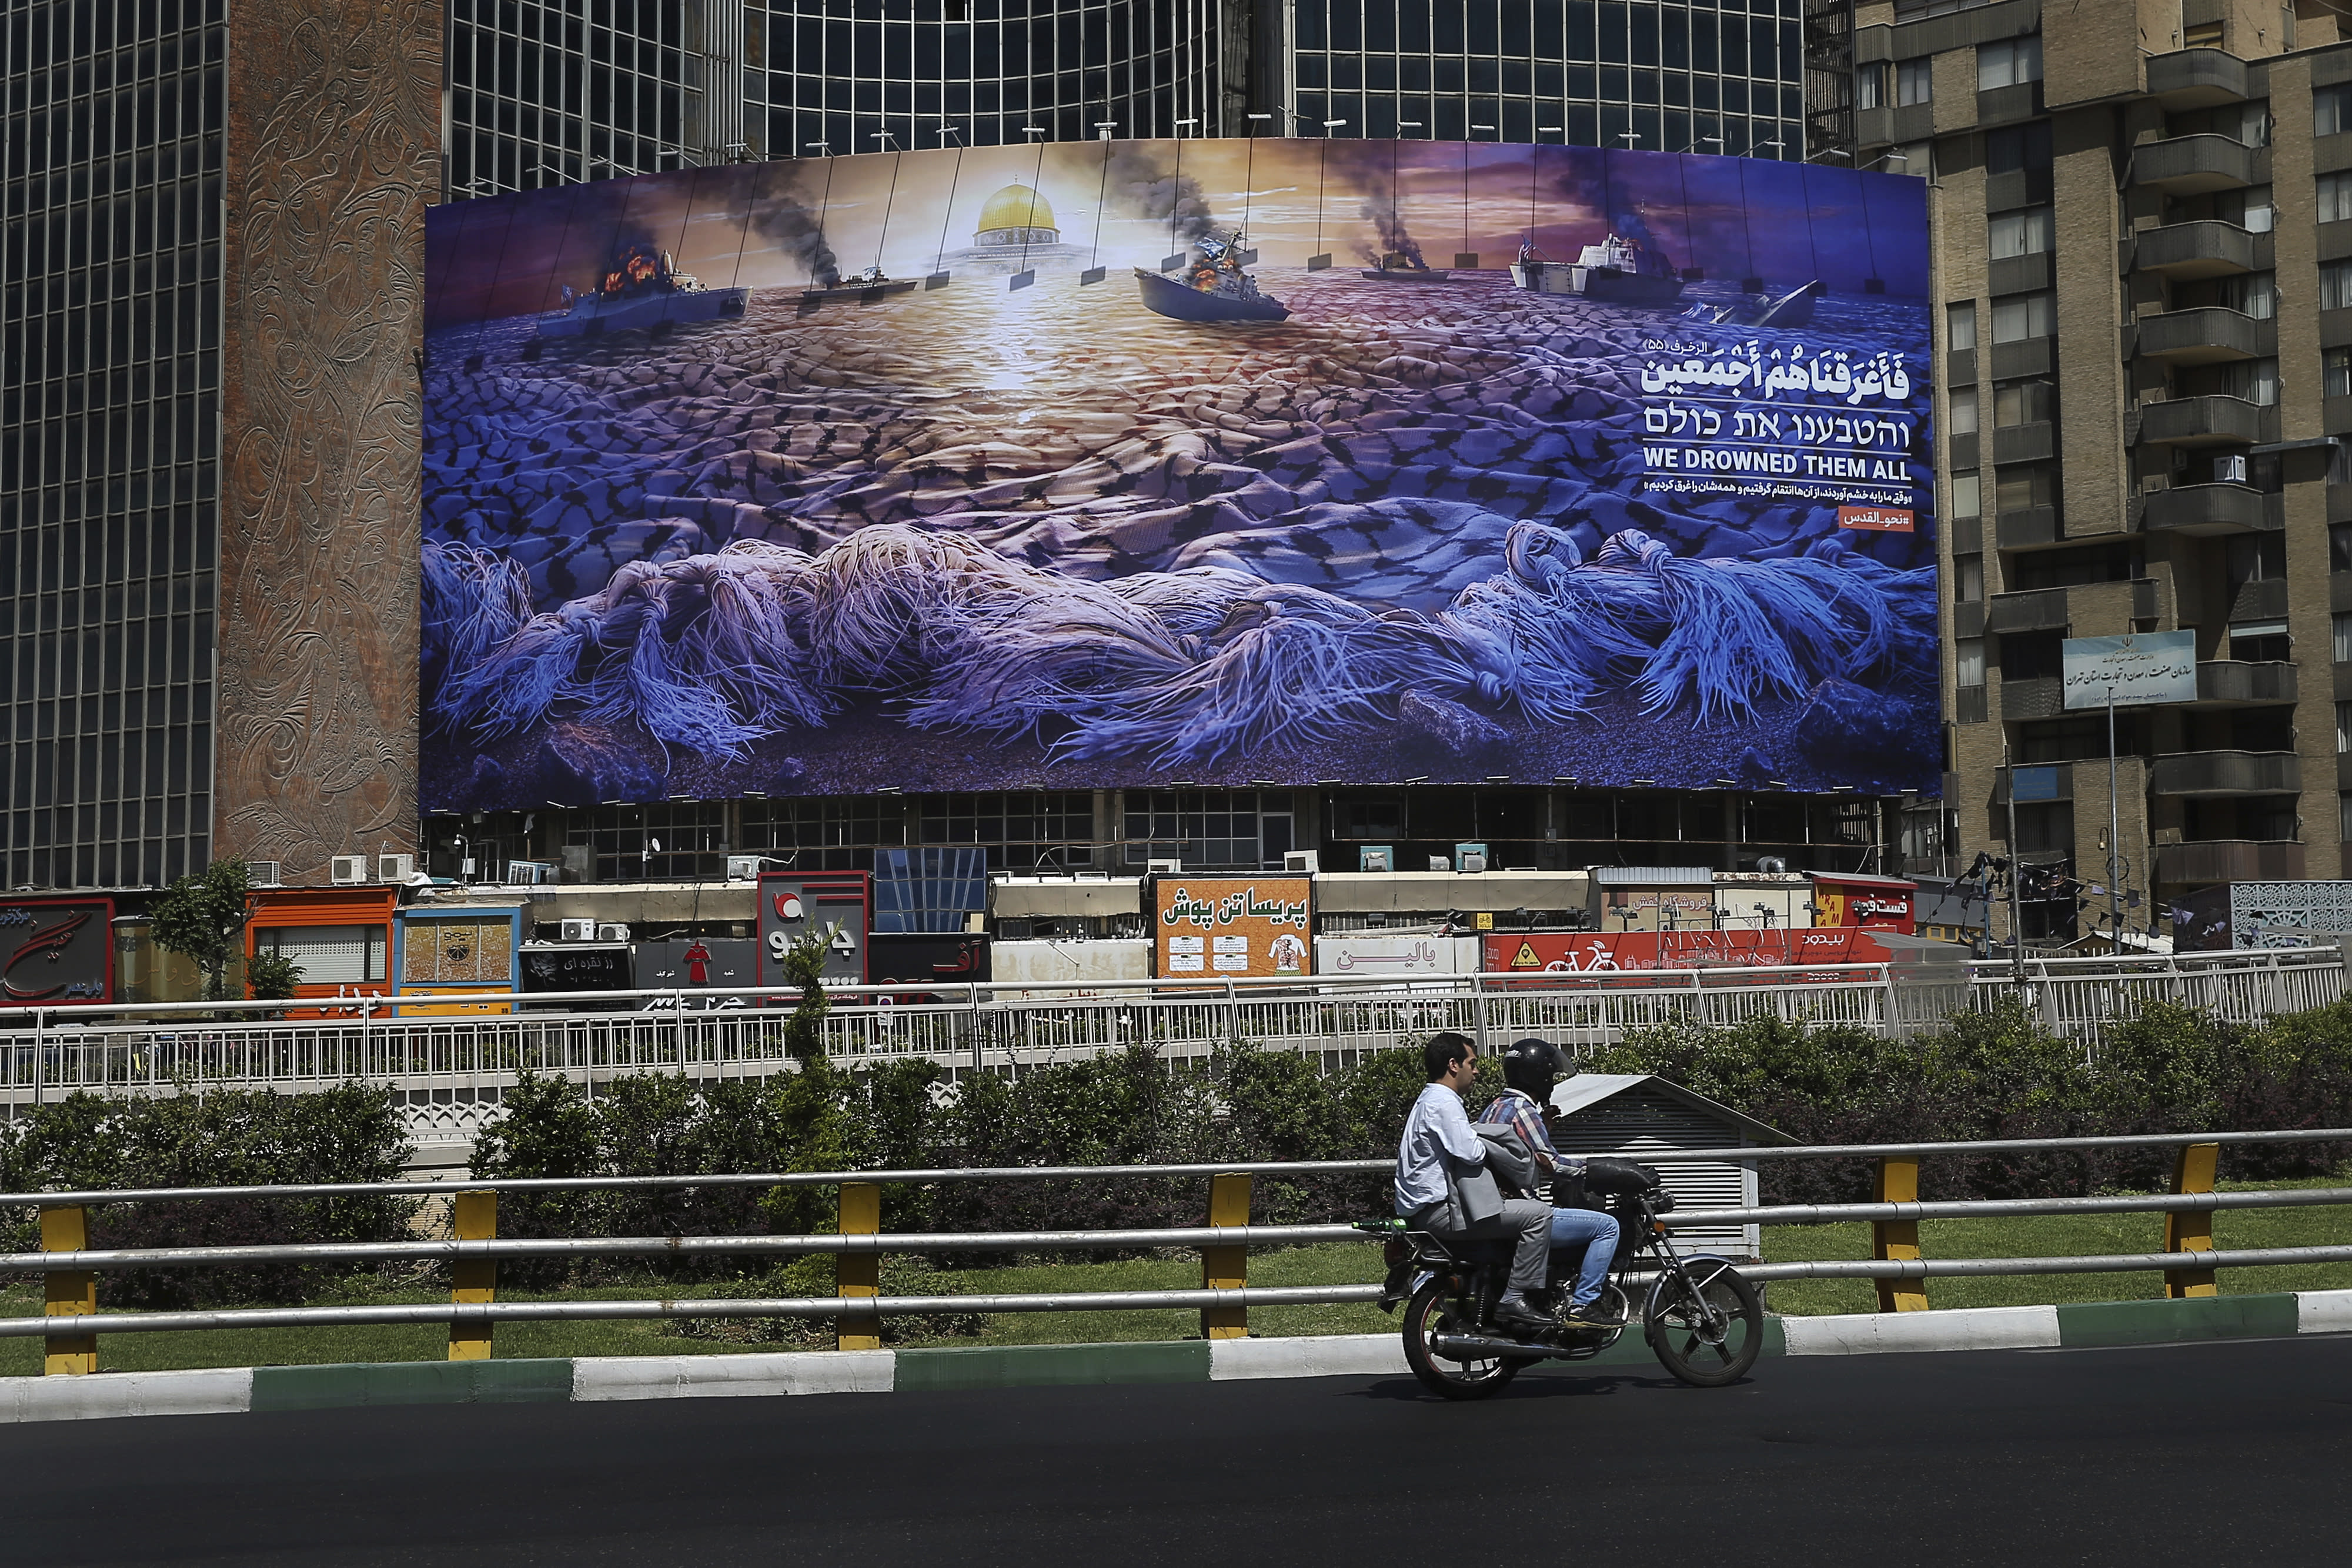 """In this Wednesday, May 29, 2019 photo, People drive at Vali-e-Asr Square in downtown Tehran where an anti-Israeli billboard is place ahead of the Al-Quds, Jerusalem, Day, Iran. Mysterious attacks on oil tankers near the strategic Strait of Hormuz show how susceptible one of the world's crucial chokepoints for global energy supplies remains, 30 years after the U.S. Navy and Iran found themselves entangled a similarly shadowy conflict. The so-called """"Tanker War"""" saw American naval ships escort reflagged Kuwaiti oil tankers through the Persian Gulf and the strait after Iranian mines damaged vessels in the region. It culminated in a one-day naval battle between Washington and Tehran, as well as saw America accidentally shoot down an Iranian passenger jet, killing 290 people. (AP Photo/Ebrahim Noroozi)"""